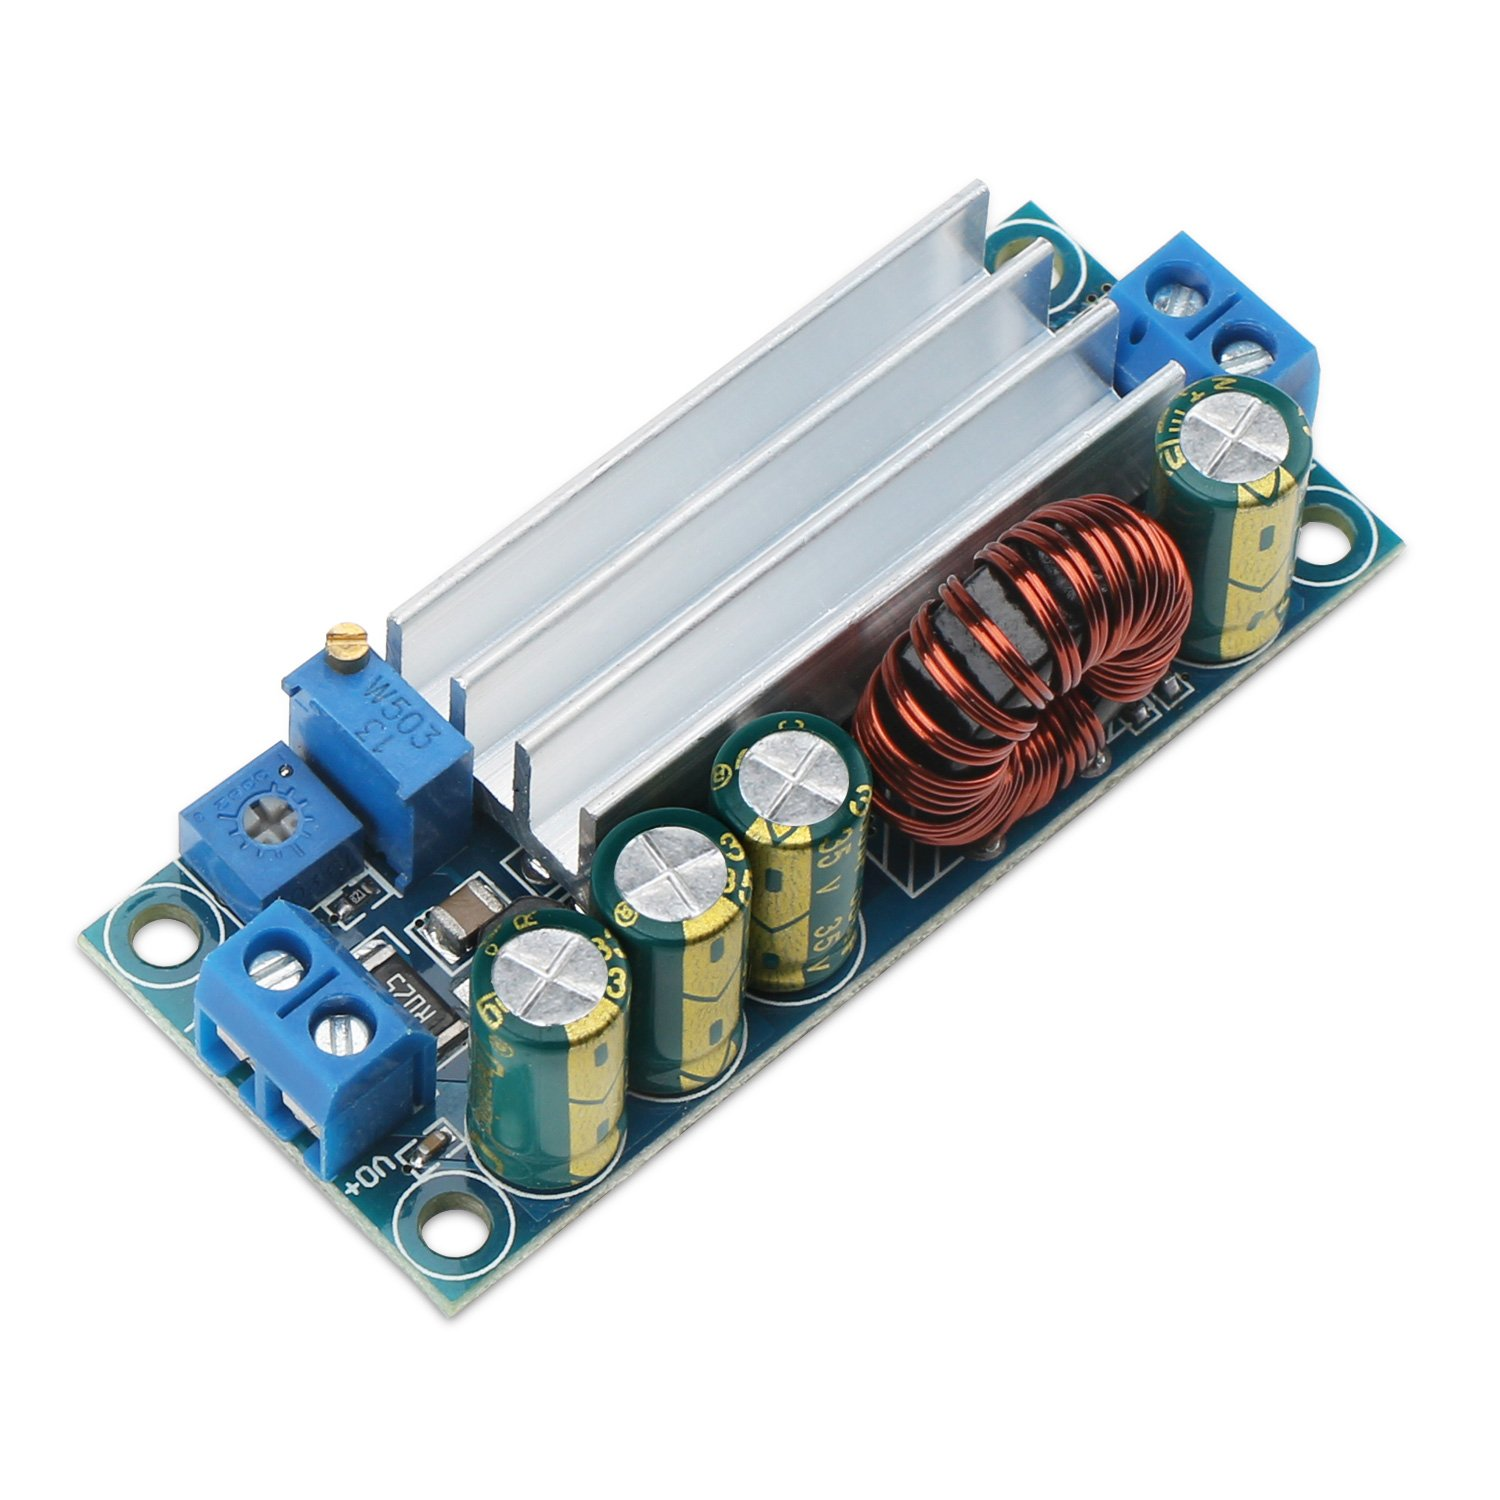 Drok Dc Auto Buck Boost Voltage Converter Step Down High Bucking Regulator Circuit Diagram Electronic Up Adjustable 5v 30v To 05 12v 4a Power Supply